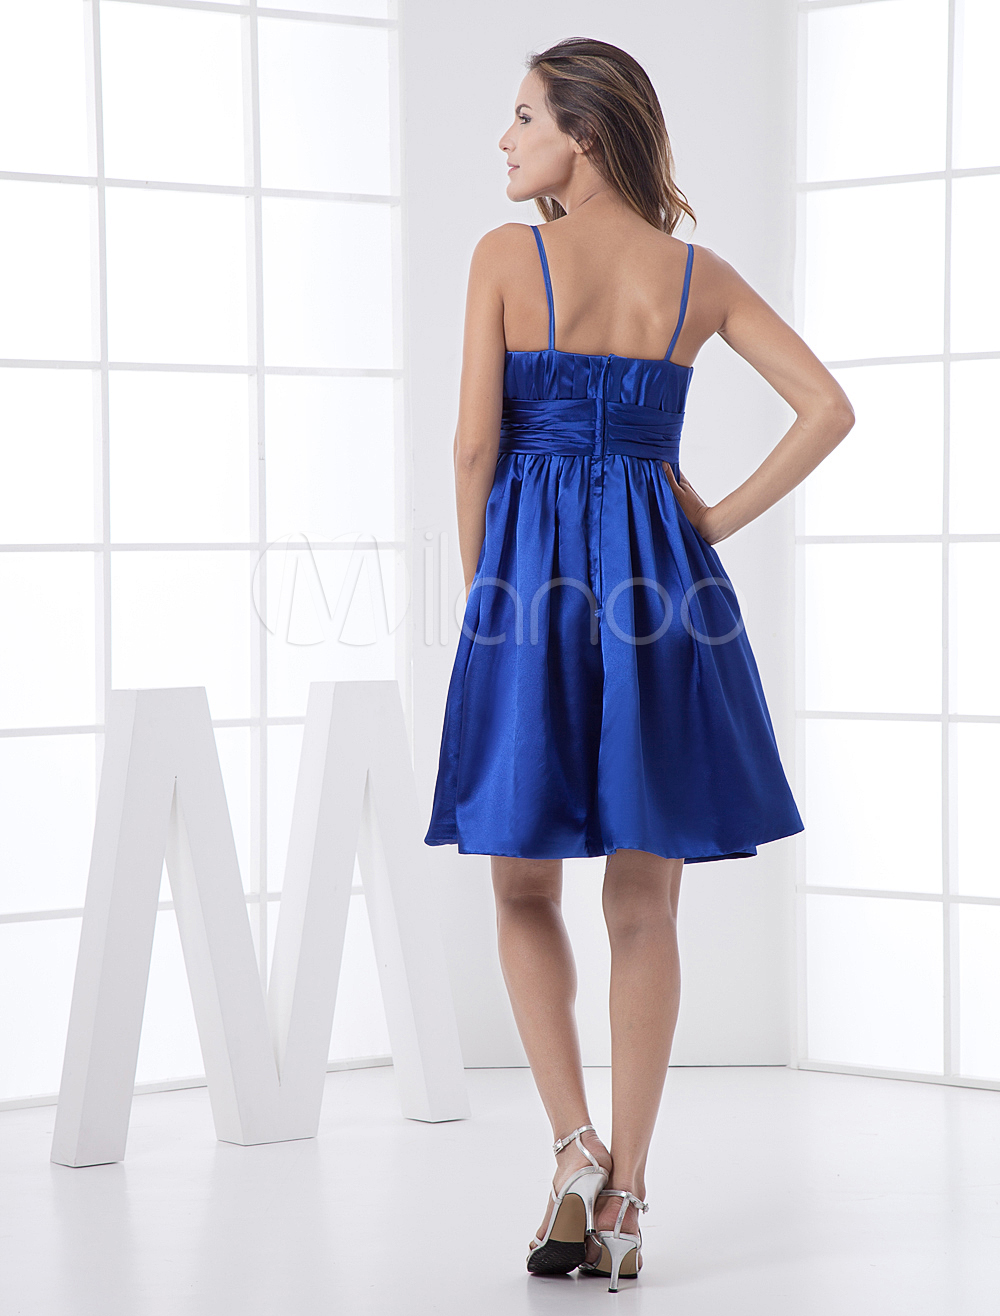 China Wholesale Dresses - Modern Sapphire Thin Shoulder Straps A-line Elastic Satin Womens Homecoming Dress